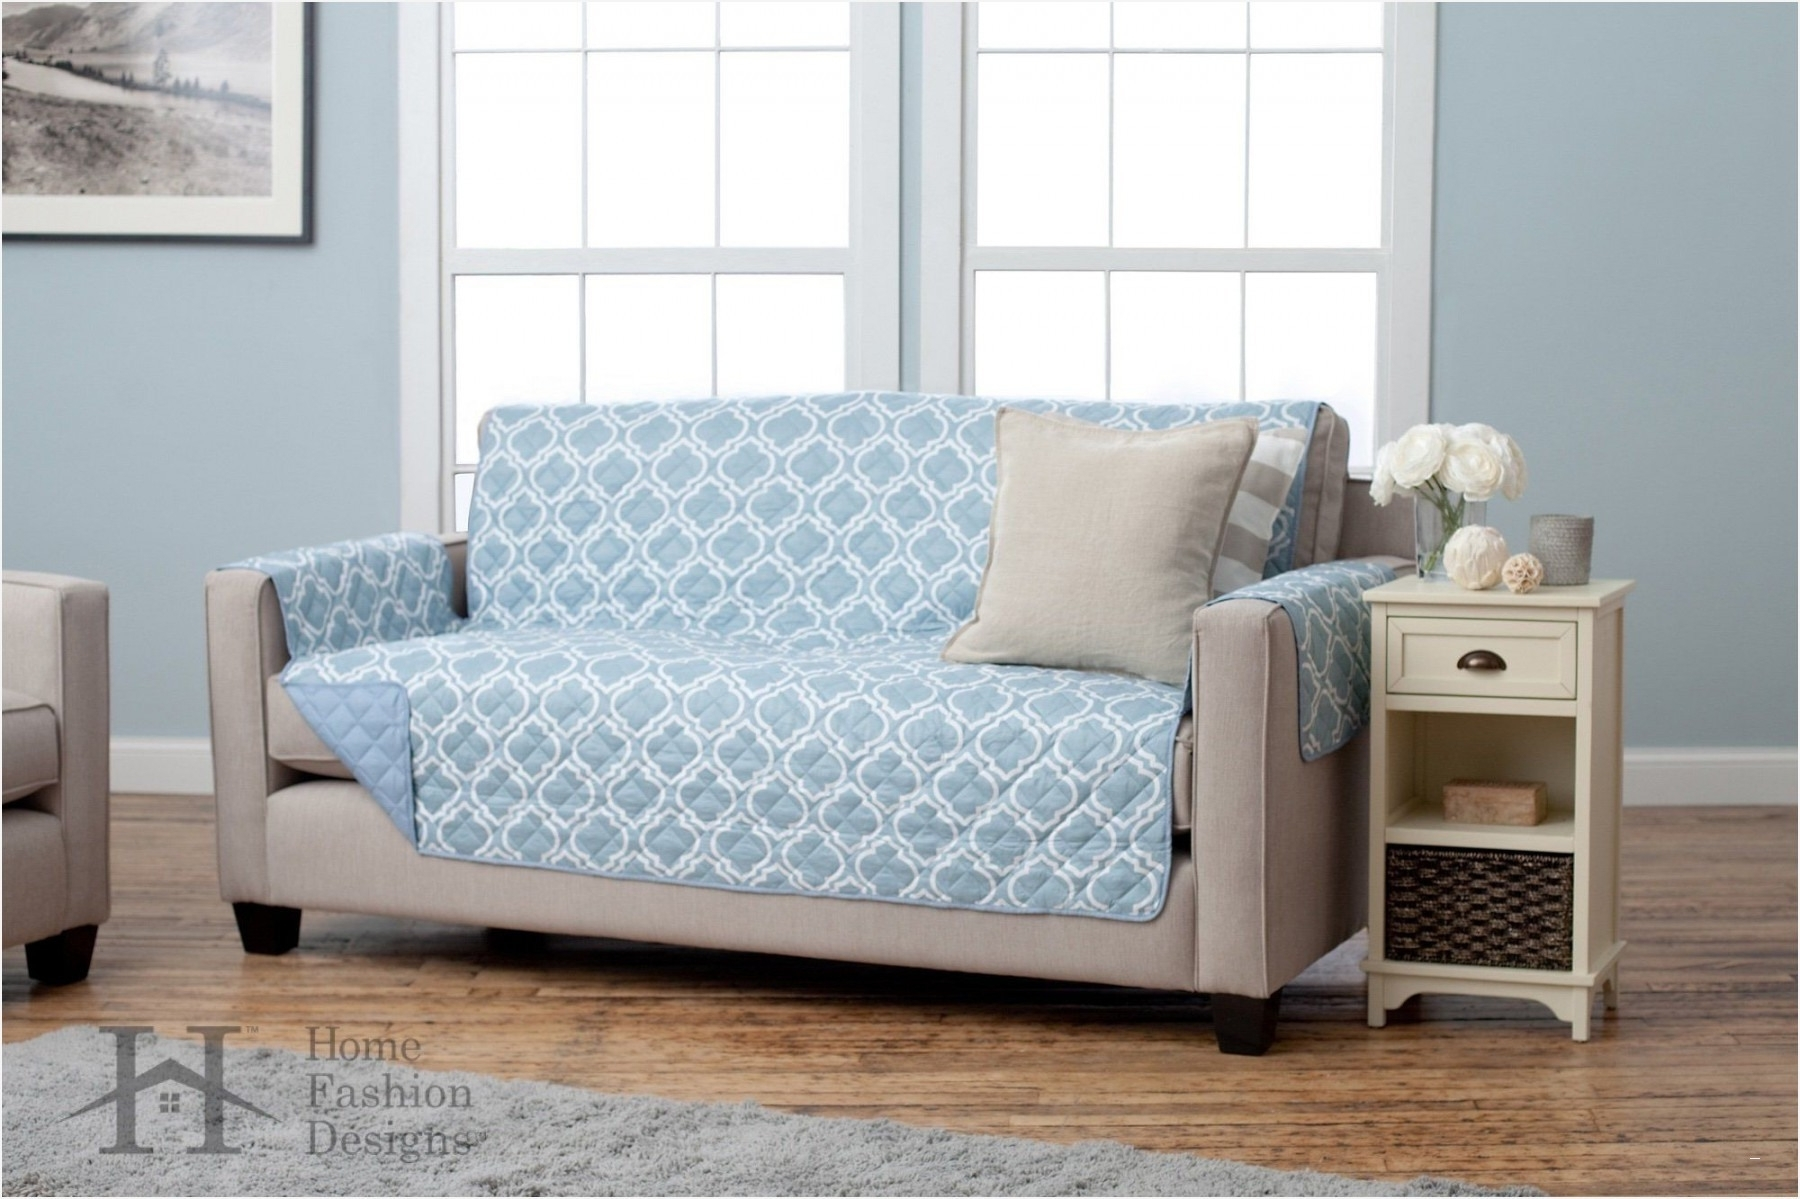 Kohl's Patio Conversation Sets Pertaining To 2018 Unique Kohls Sofa Covers Kohl S Patio Furniture Sets Inspirational (View 5 of 15)